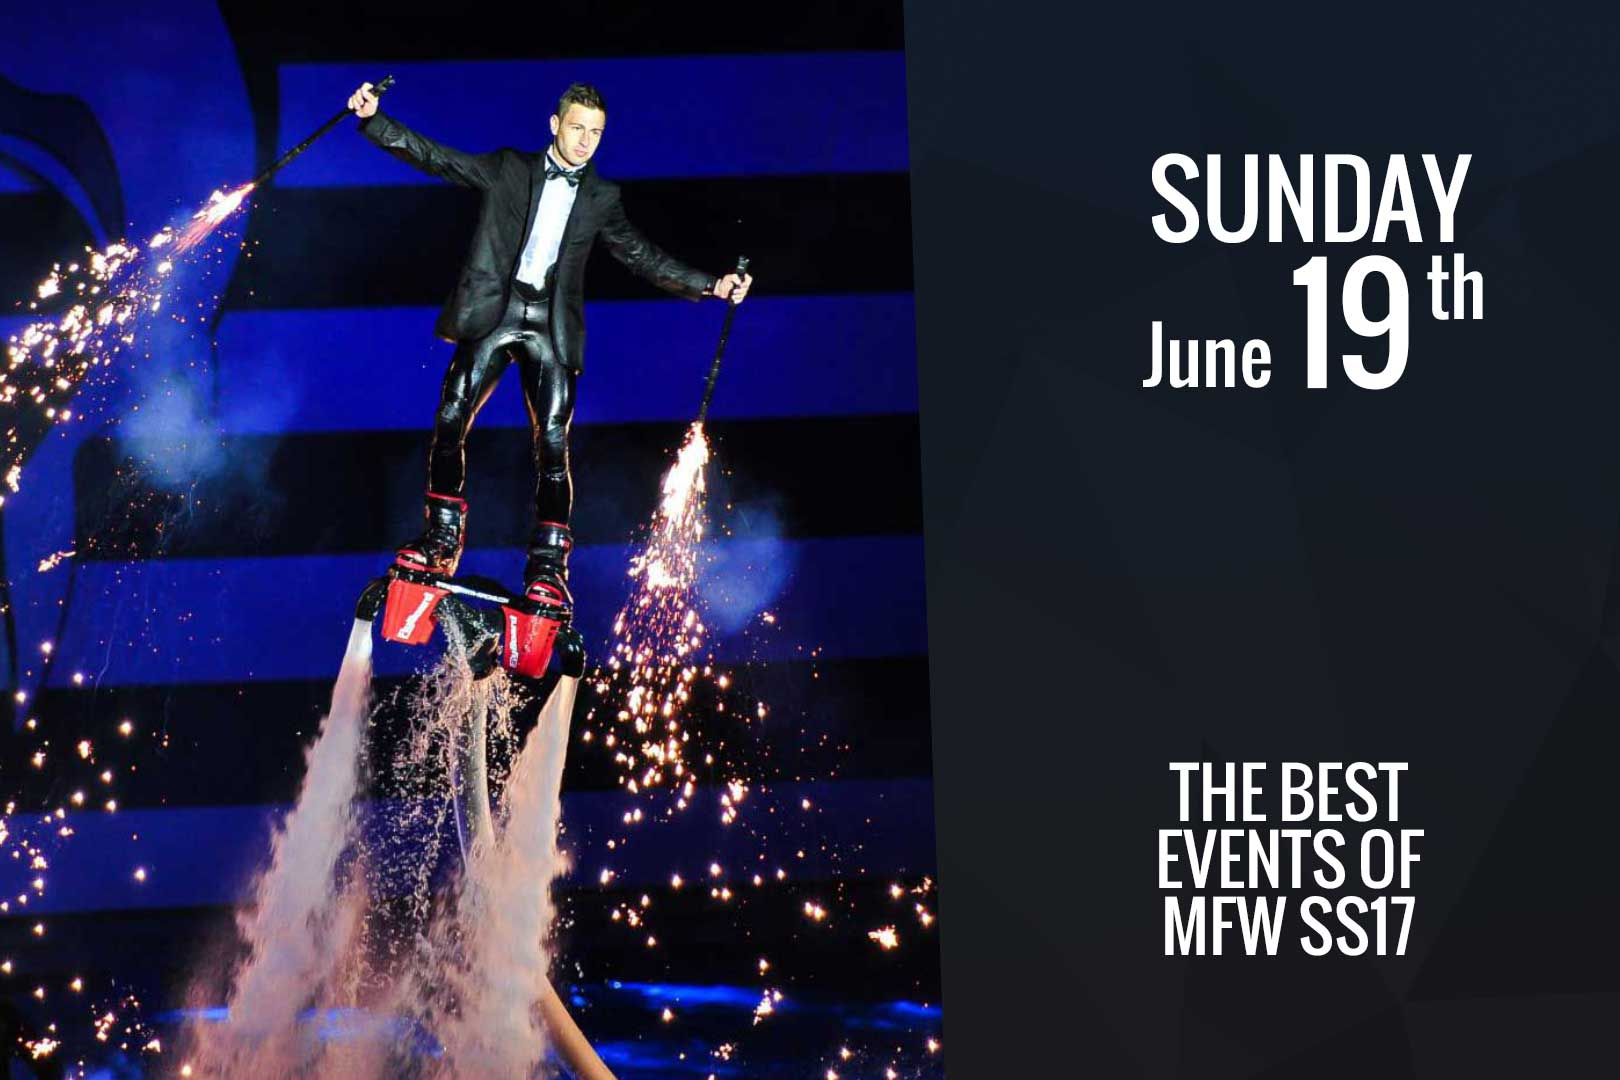 Sunday June 19th: the best events